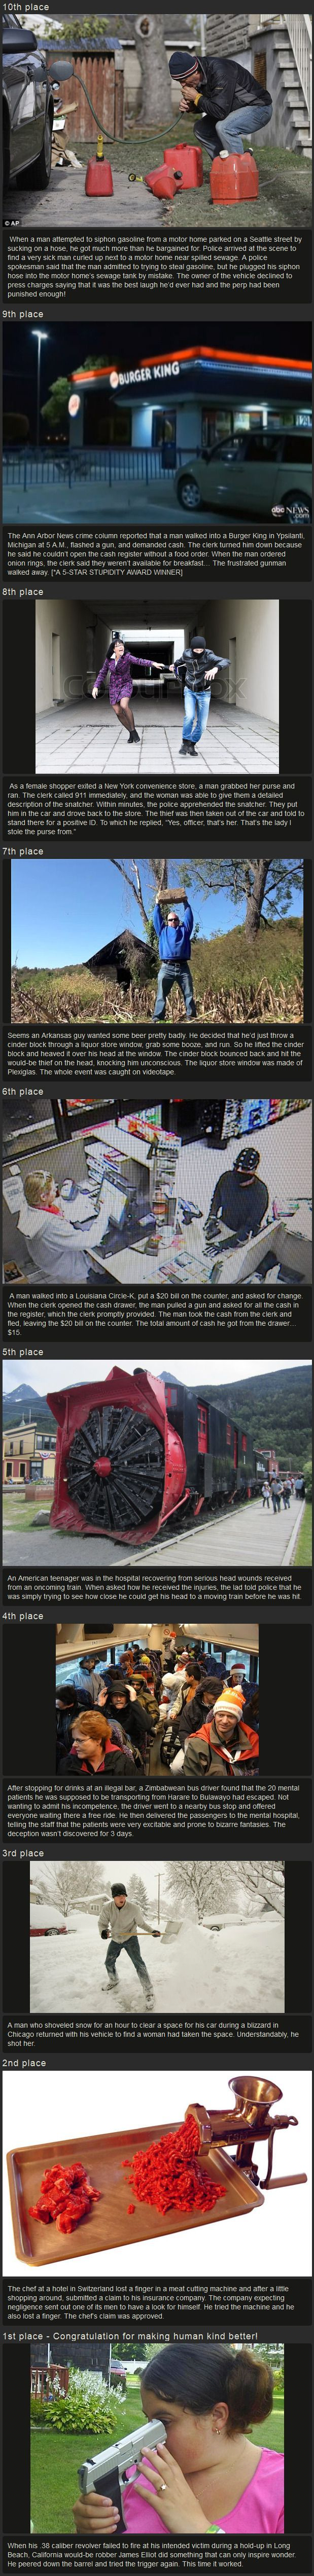 Darwin Awards 2013 - The biggest idiots of the year